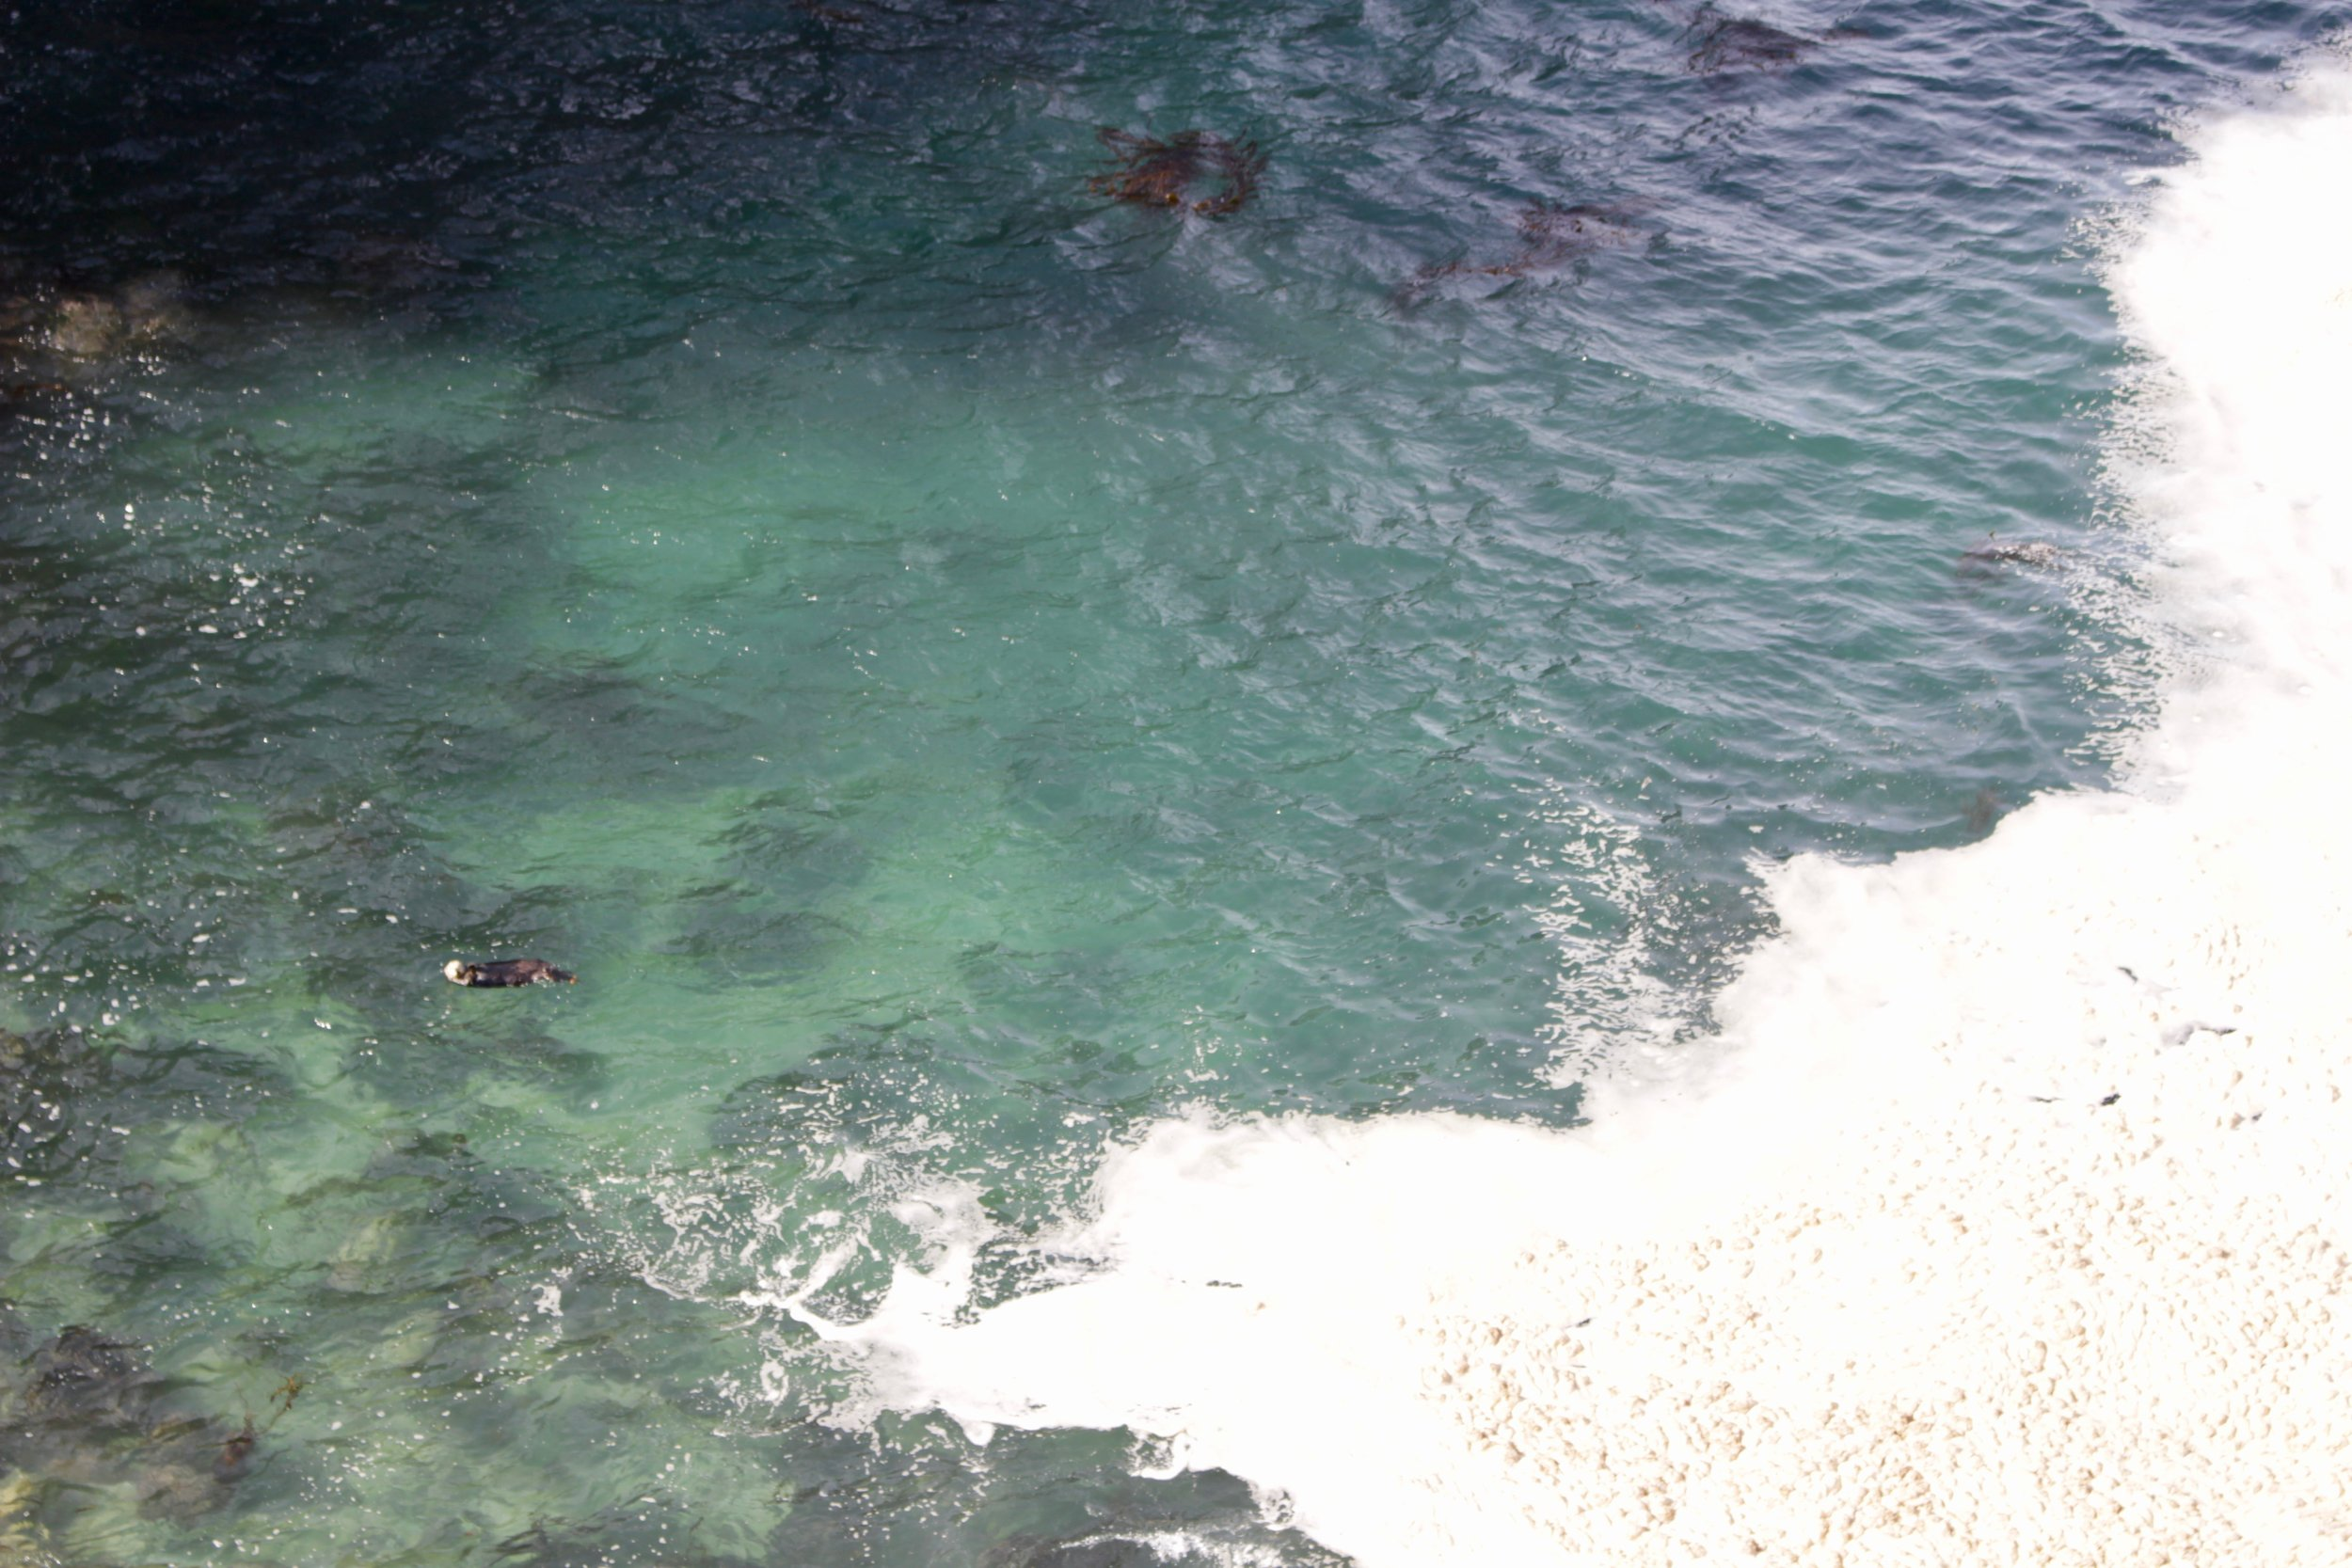 It's a bit hard to see, but that's a sea otter in the water!